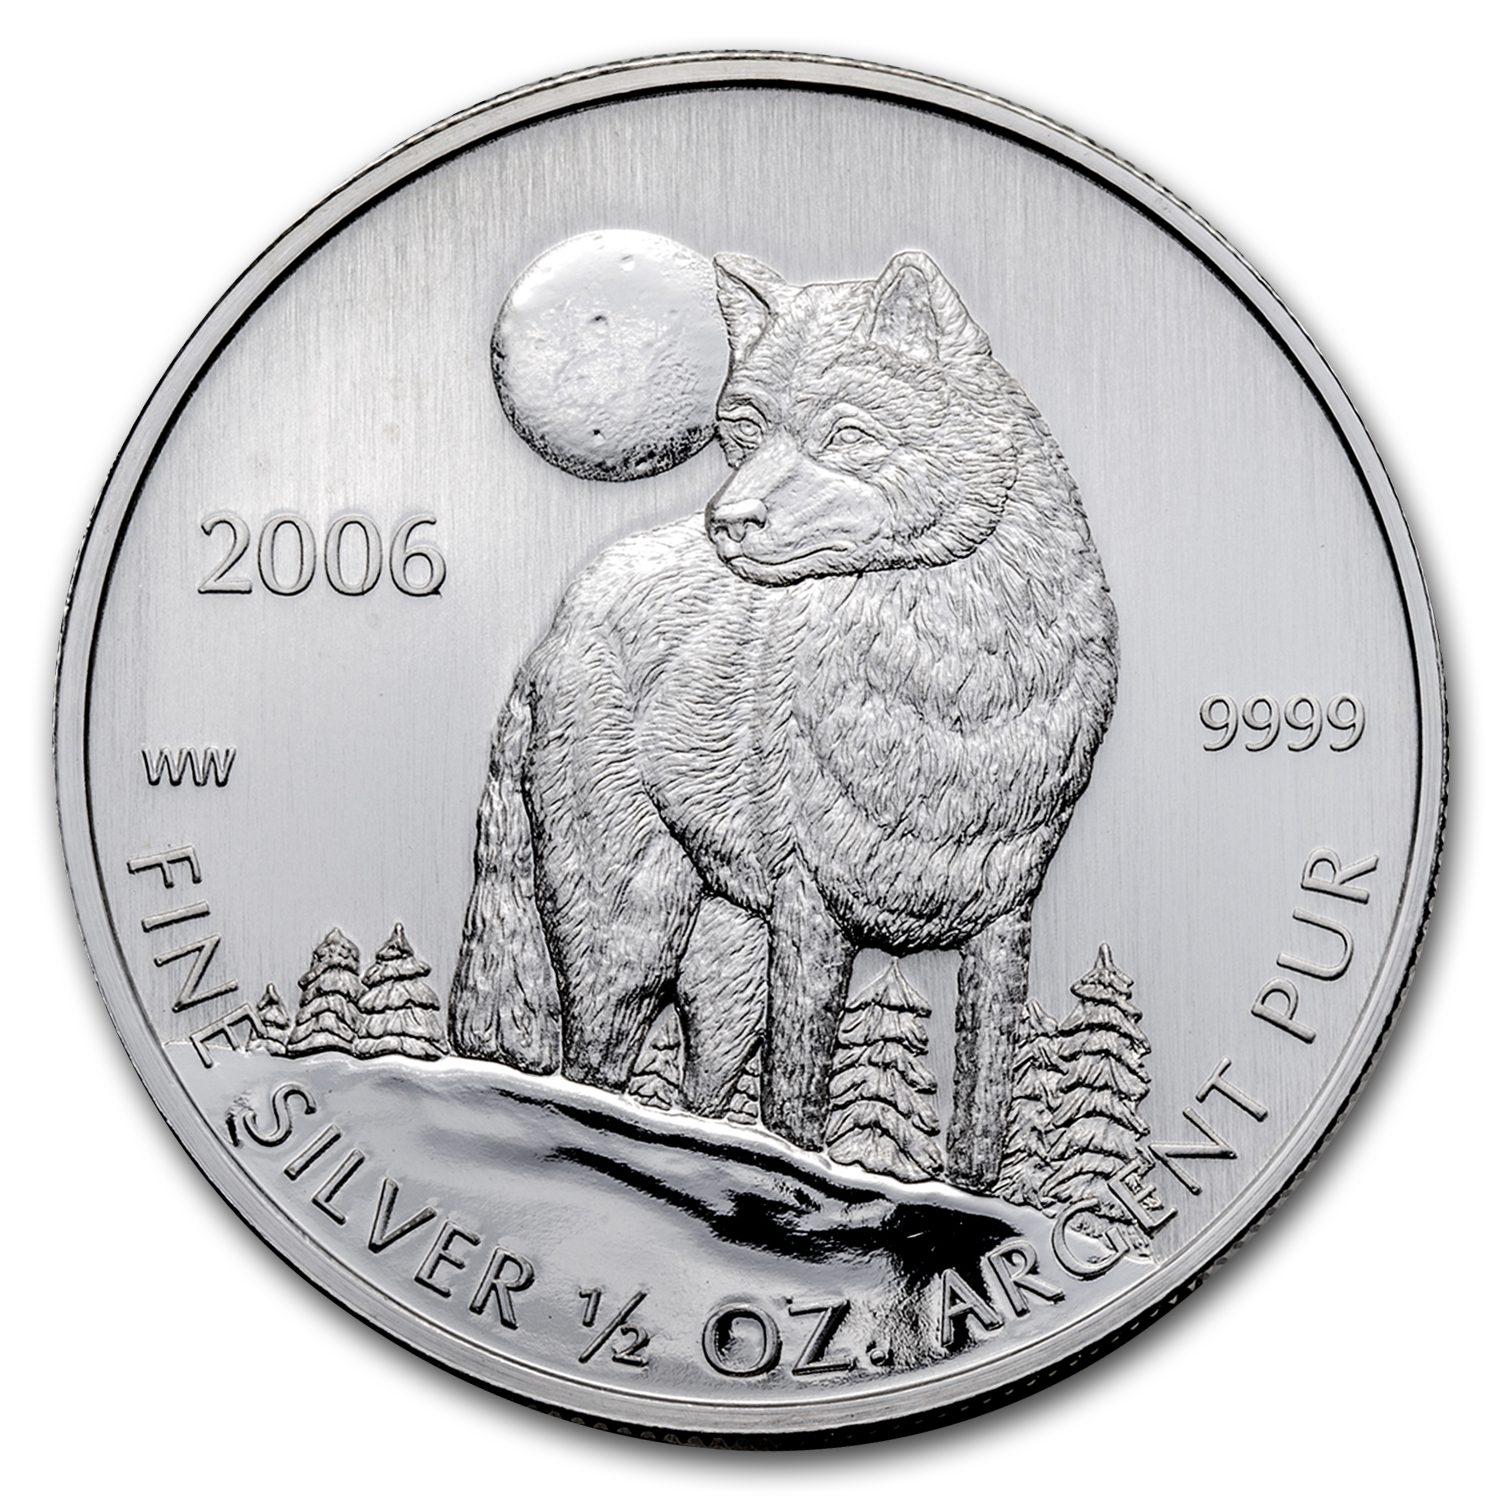 2006 Canada 1/2 oz Silver Timber Wolf Coin BU